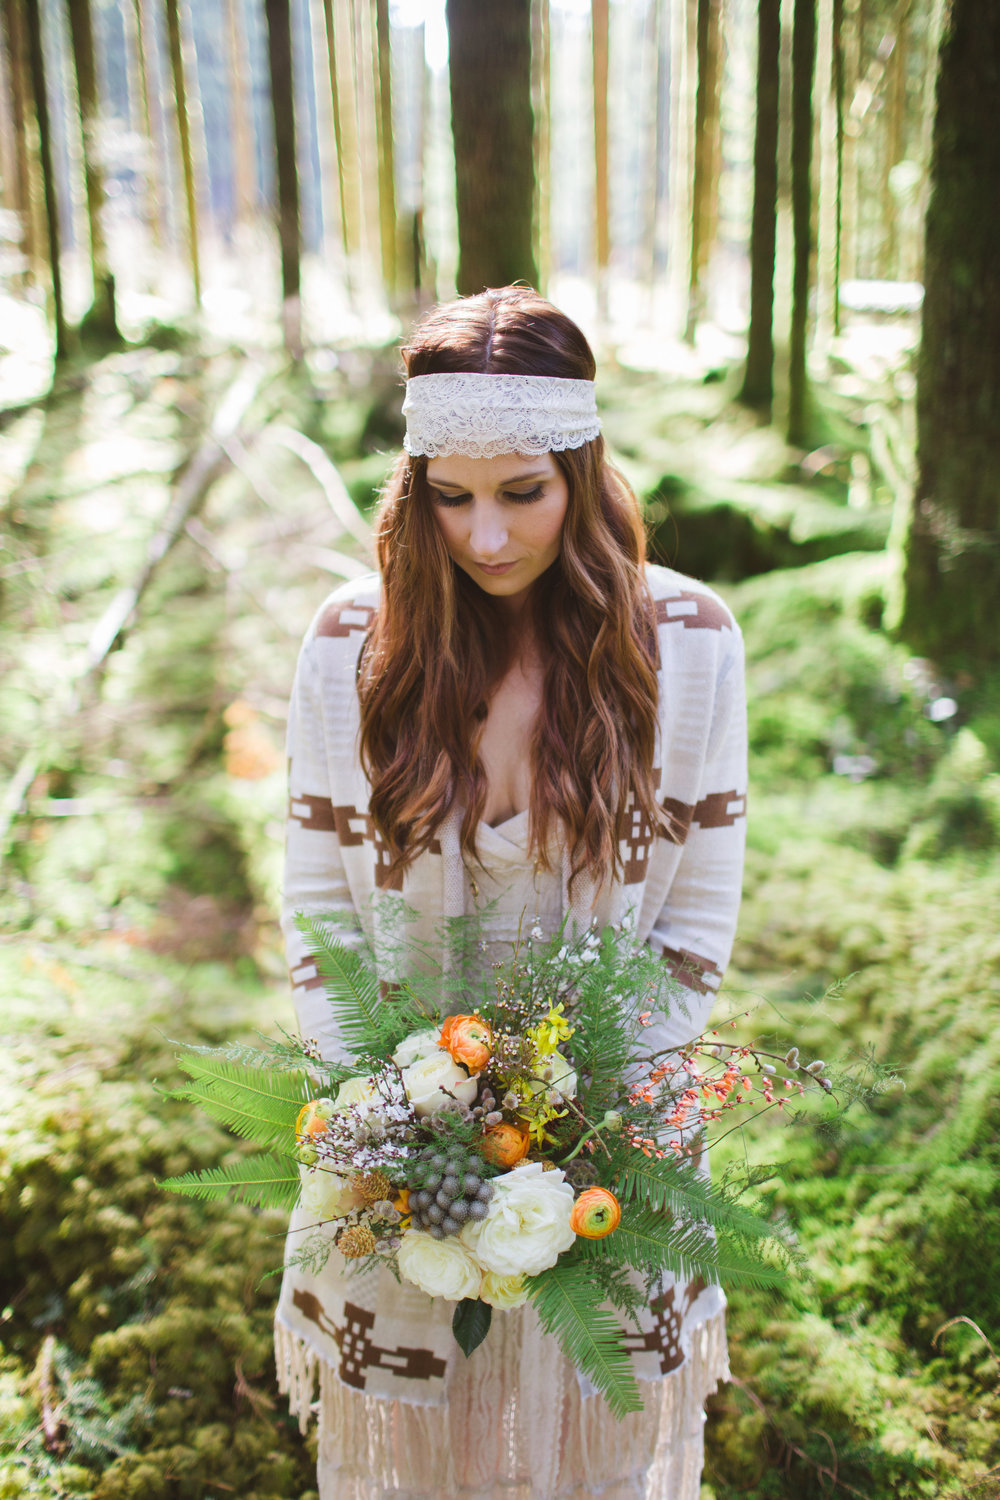 Vancouver Bohemian wedding style by Floral design by Lili , Image by Rachel Barkman